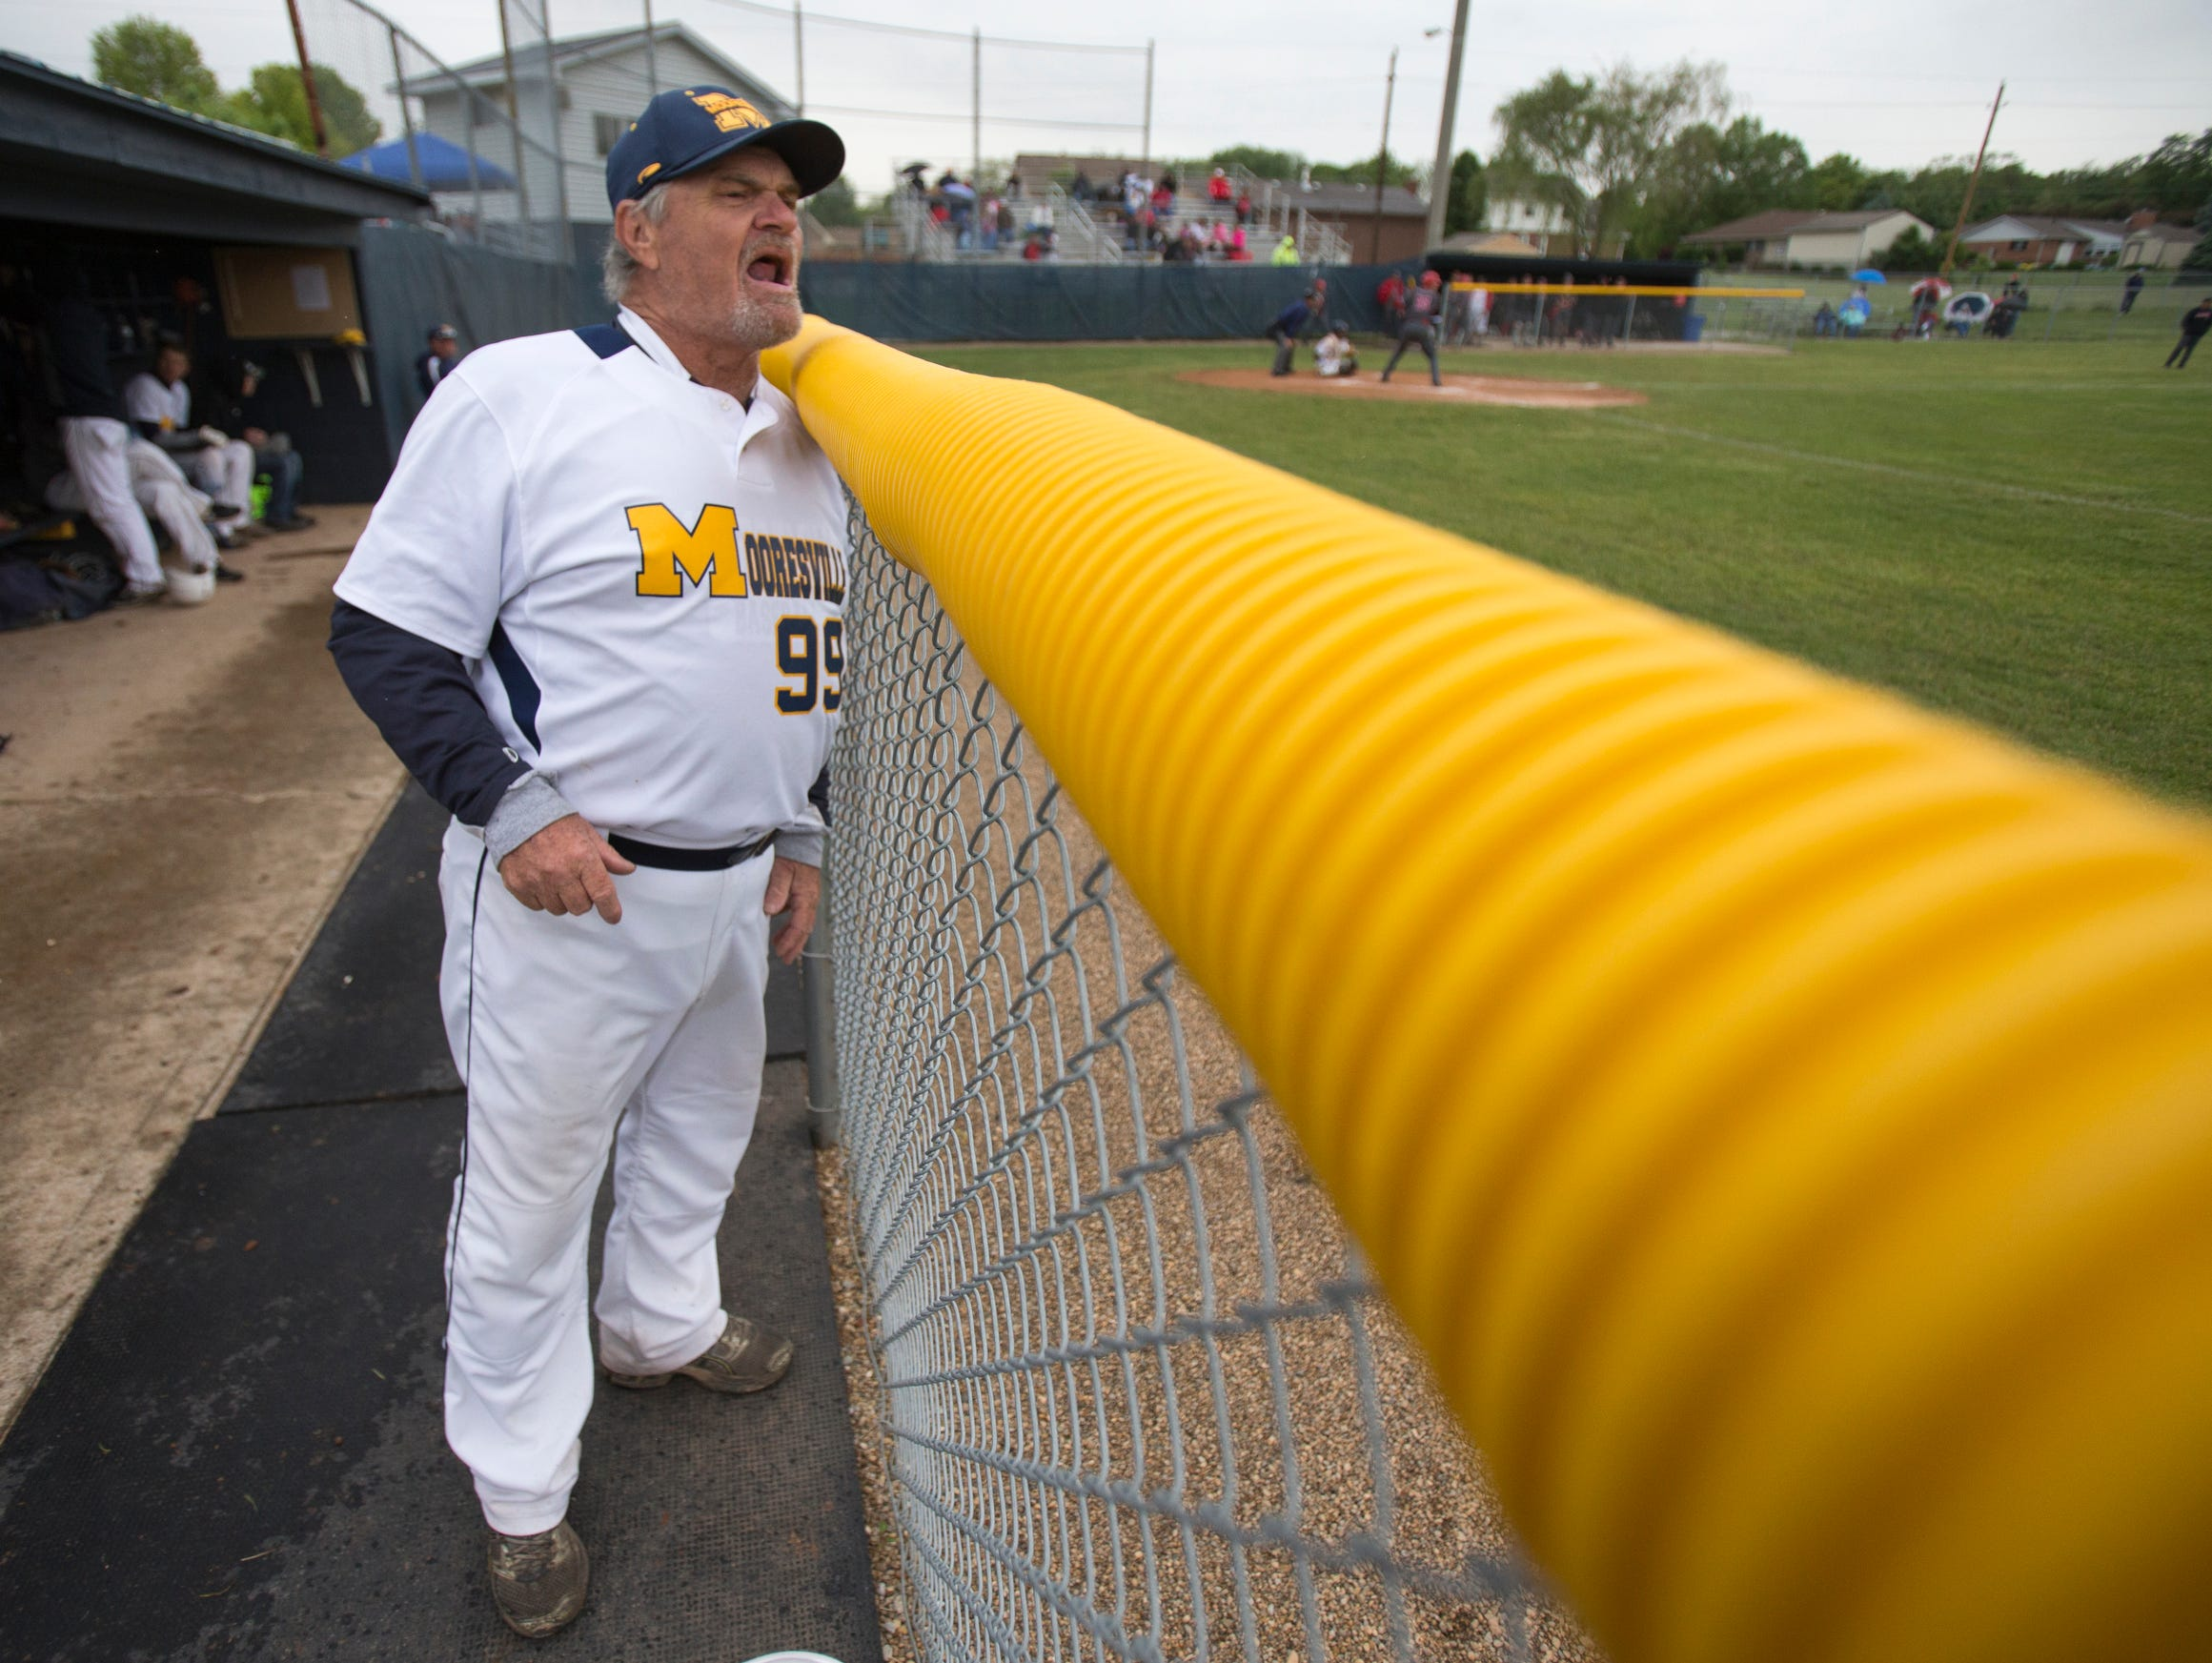 David Rose, brother of Pete Rose, is an assistant coach at Mooresville High School, Mooresville, May 20, 2015.